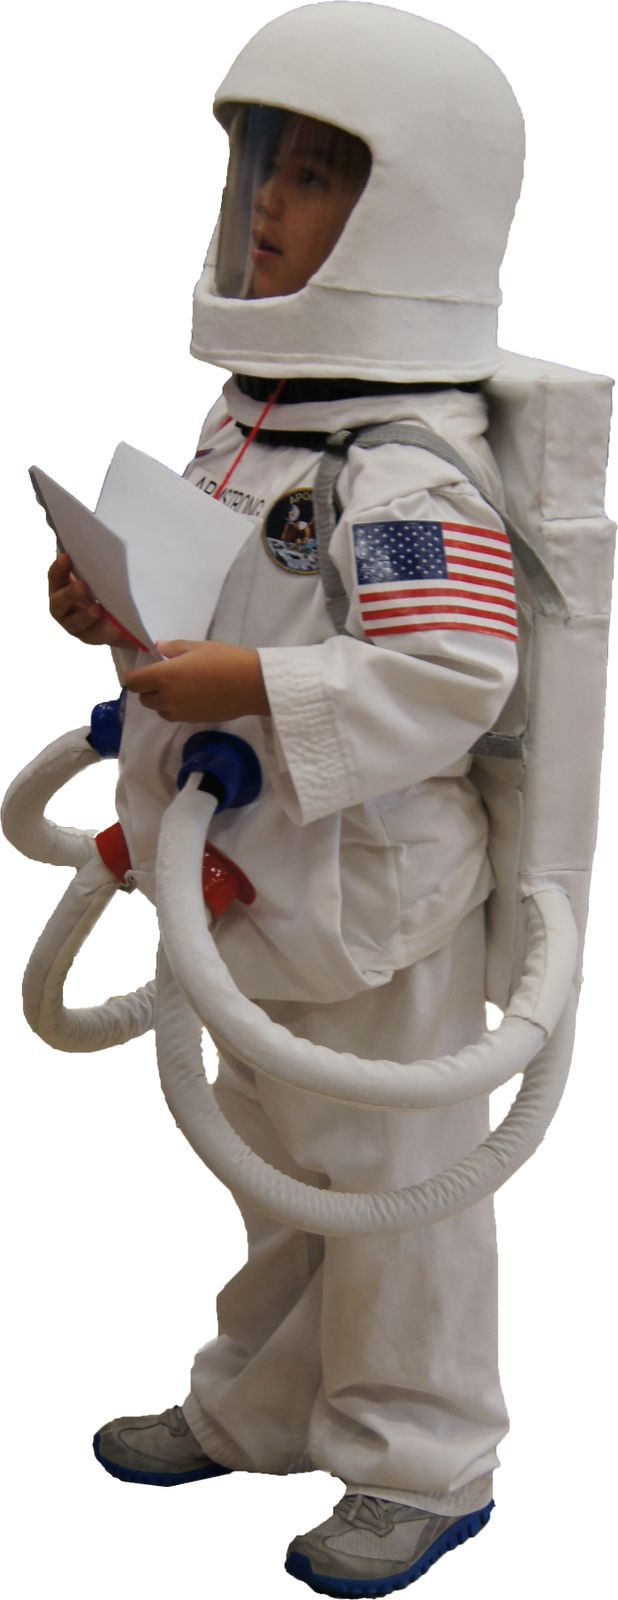 ivetastic: DIY armstrong astronaut suit